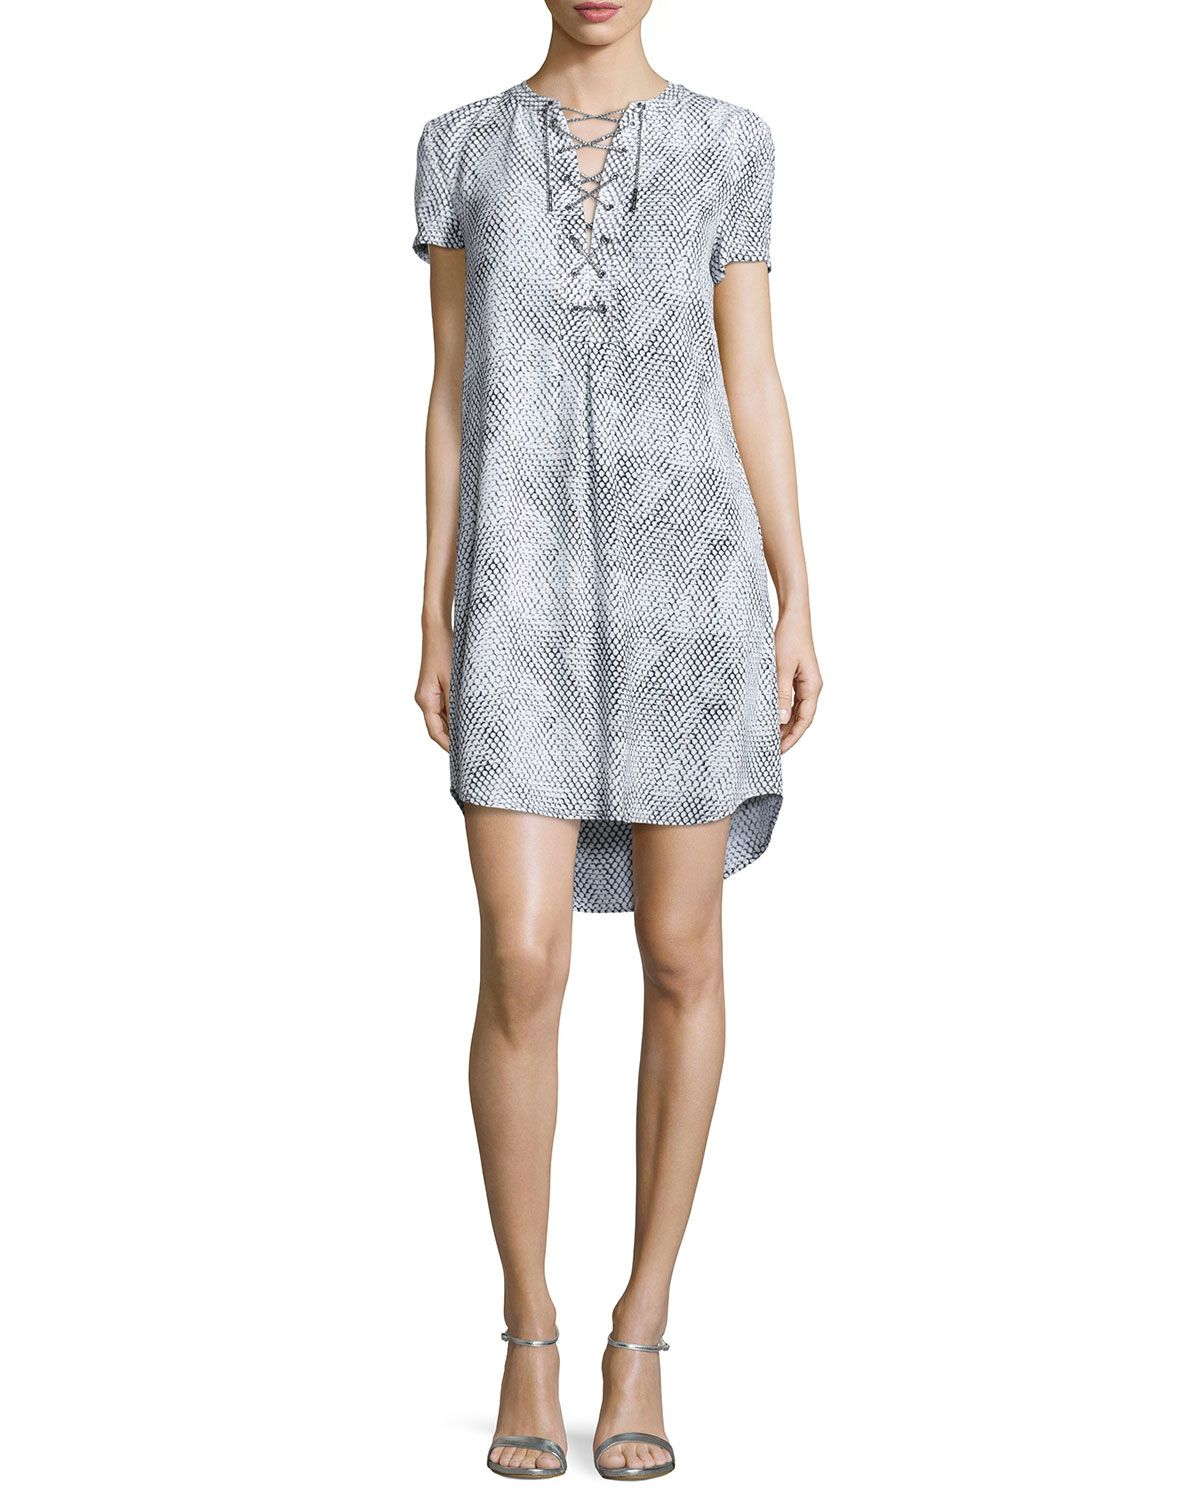 Safari Ceremony Dress W/ Chain Lace-Up